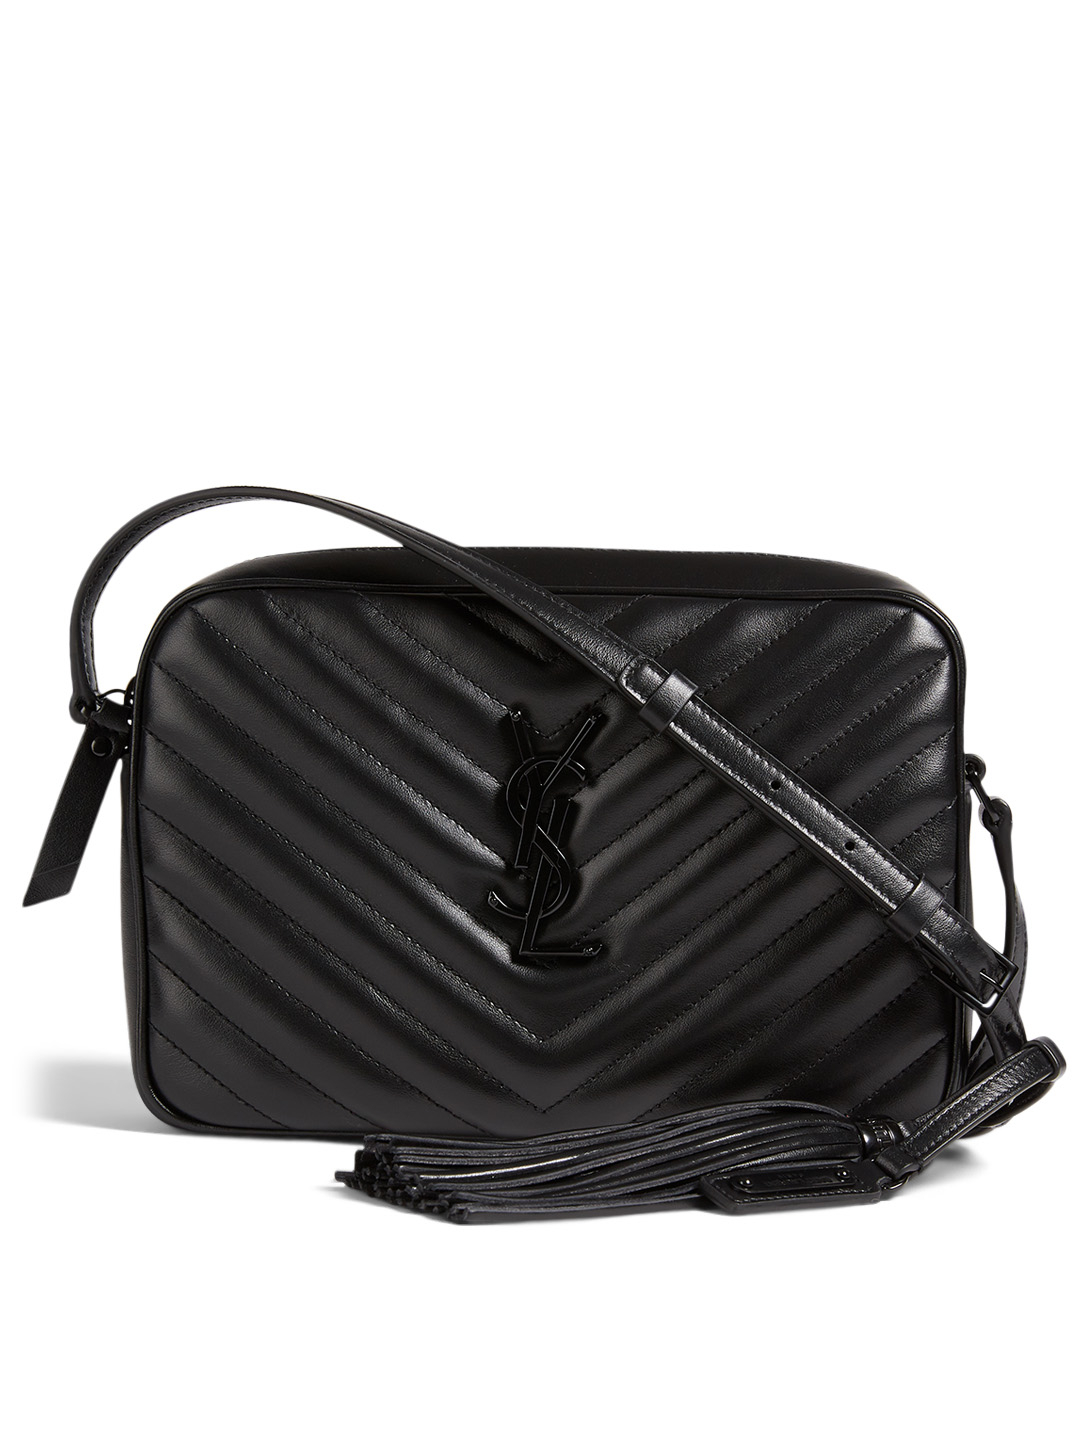 Saint Laurent Lou Ysl Monogram Leather Crossbody Camera